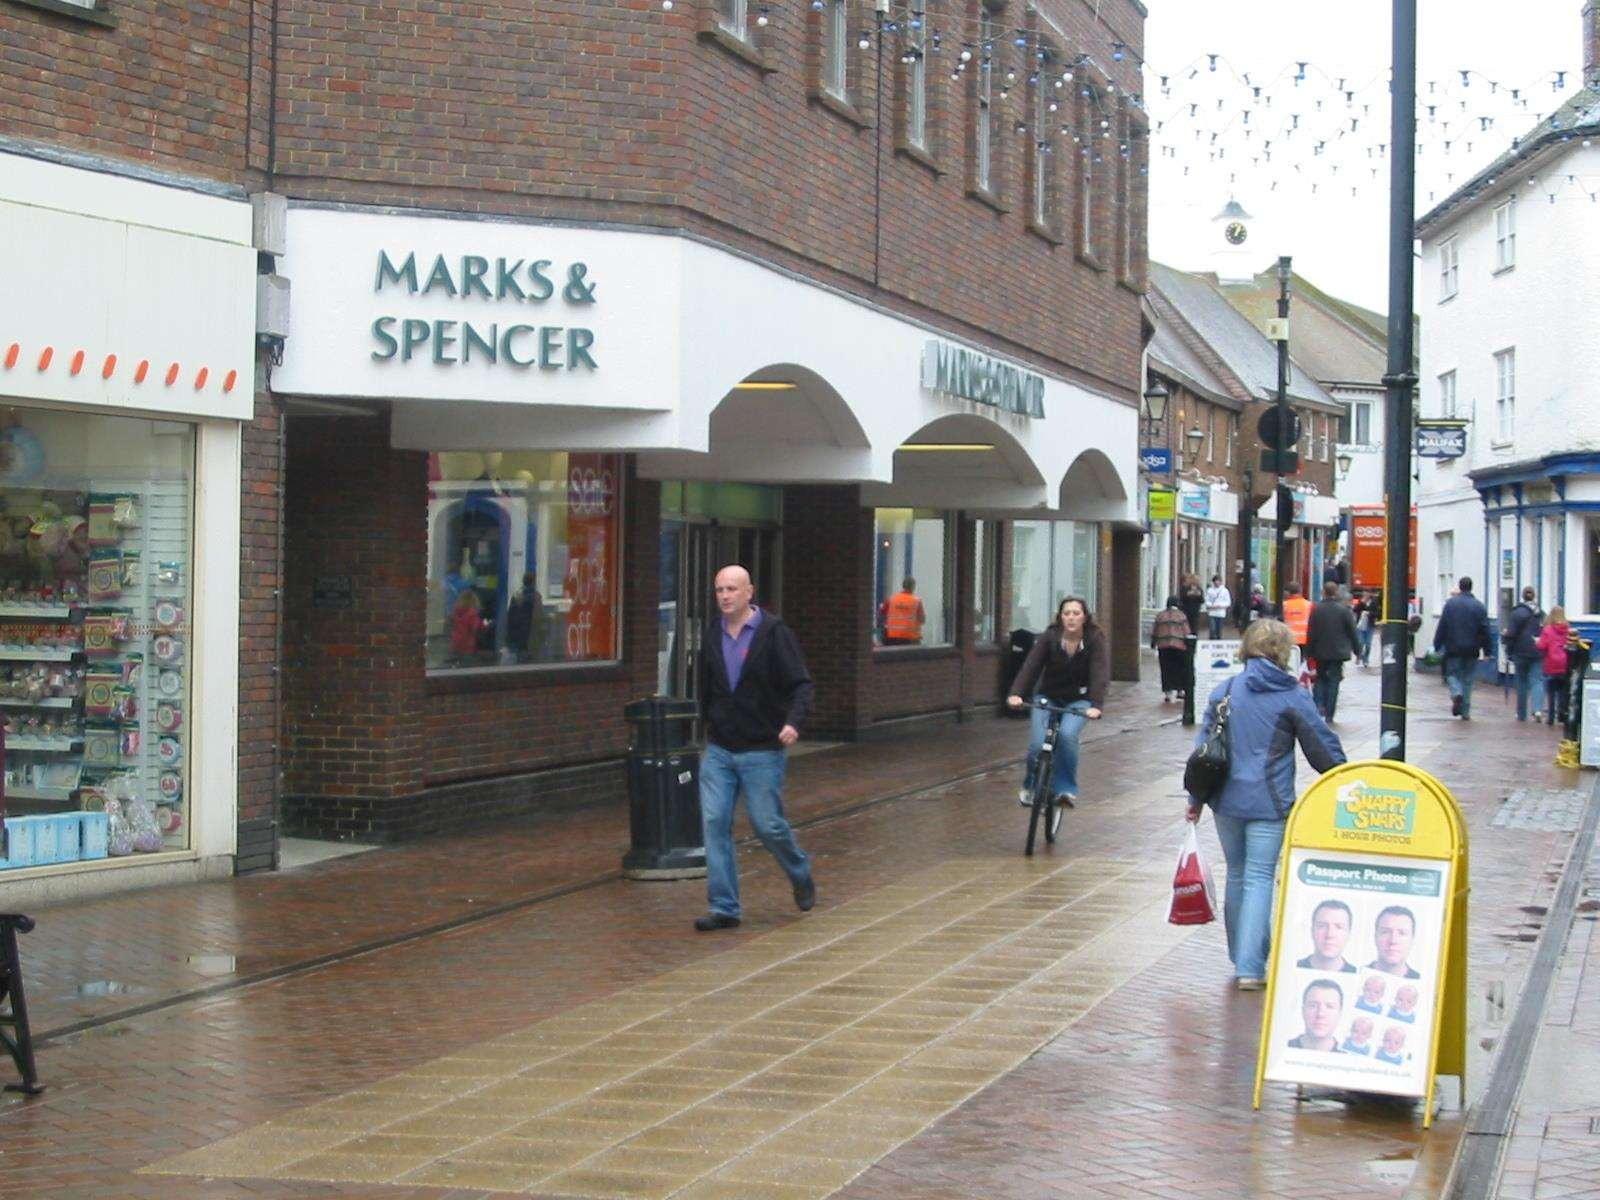 Marks & Spencer is closing down store in Felixstowe